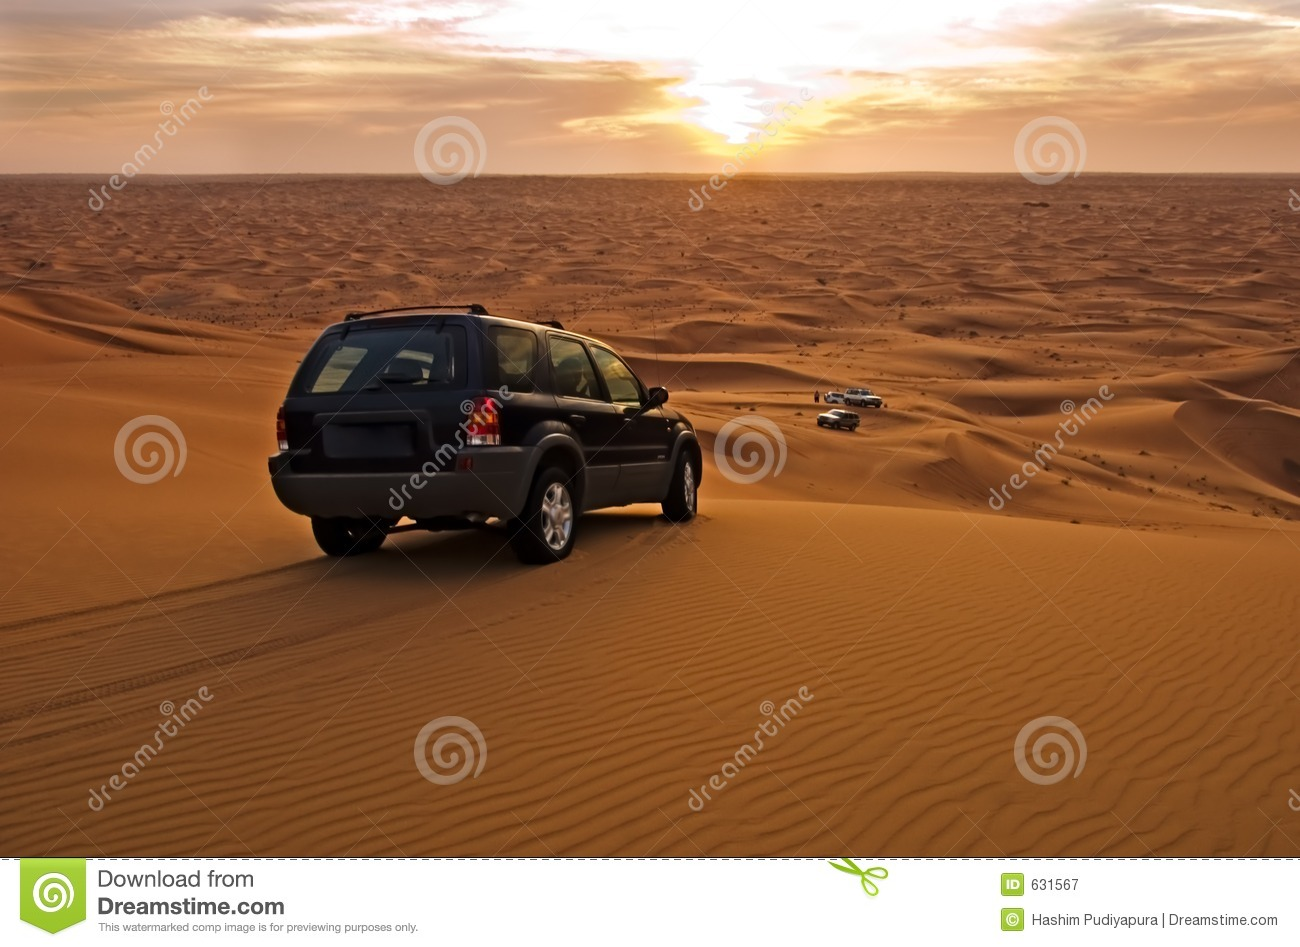 Desert Suv Royalty Free Stock Photography Image